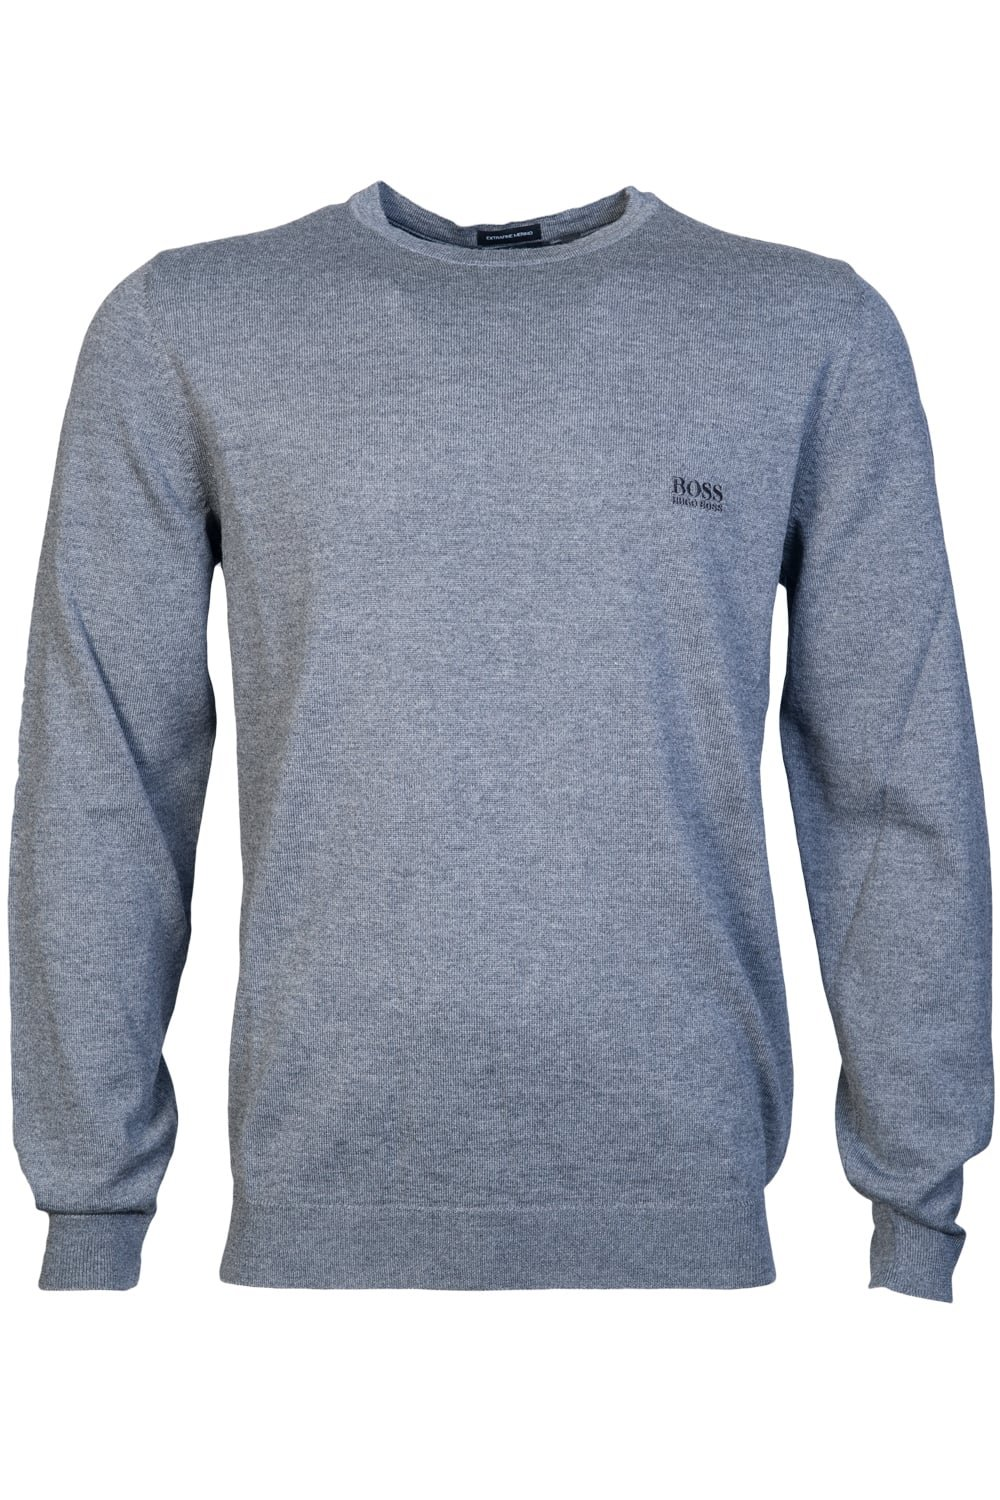 HUGO BOSS Mens Round Neck Knitwear botto-L 50373739 Size L Grey